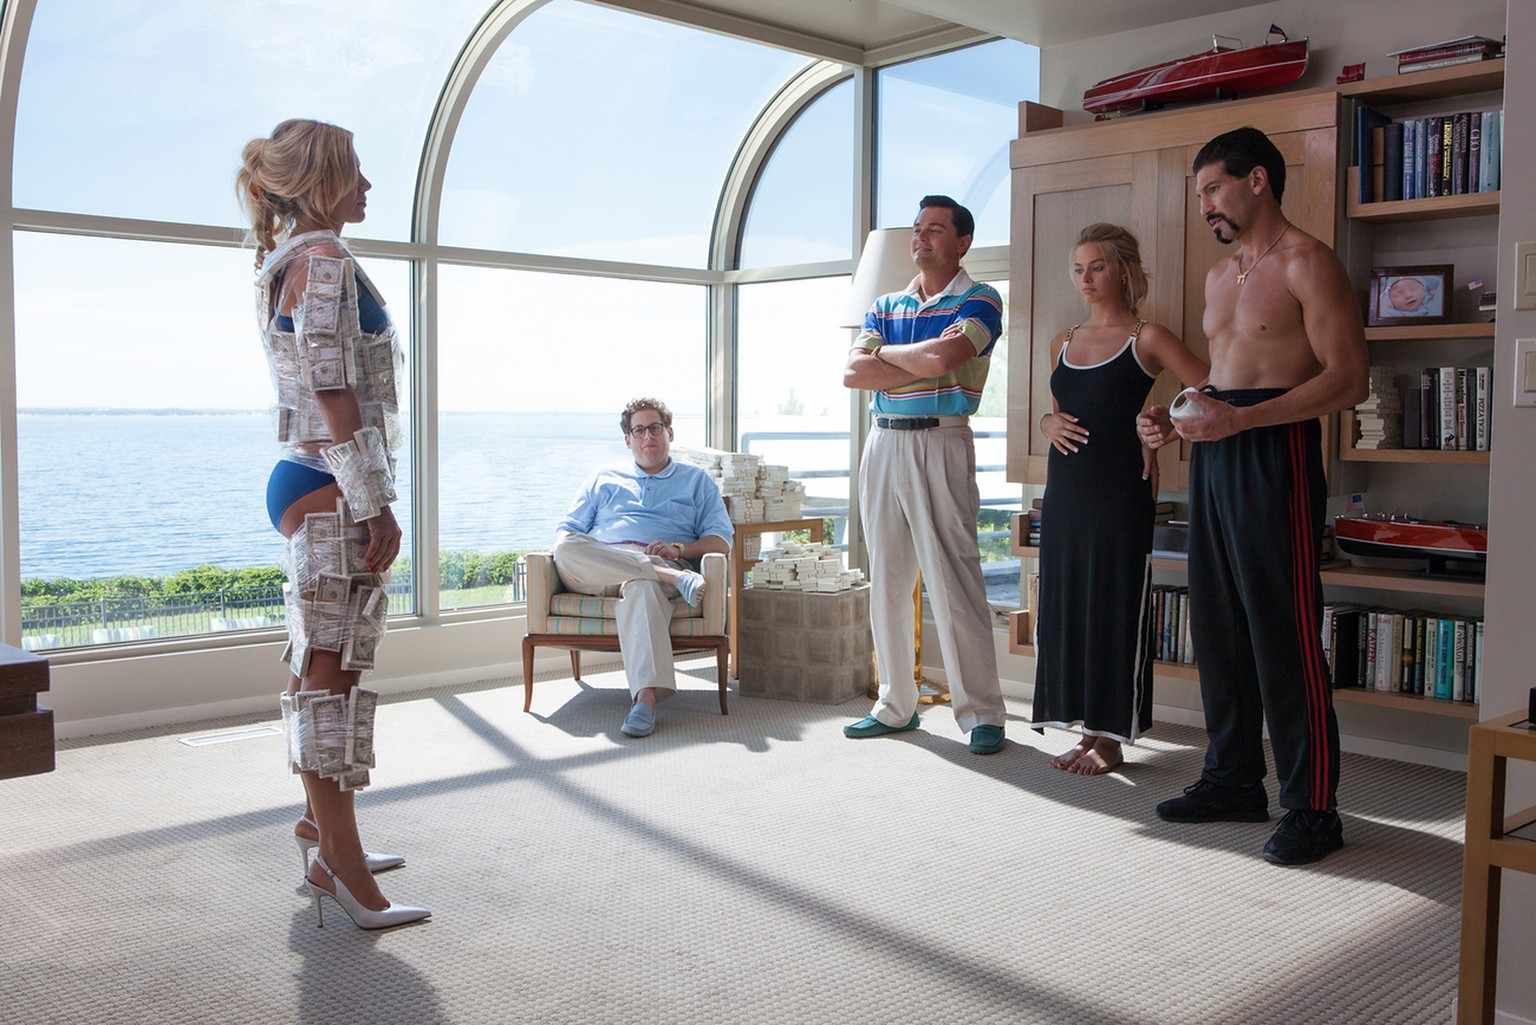 This image released by Paramount shows, from left, Katarina Cas, Jonah Hill, Leonardo DiCaprio, Margot Robbie and Jon Bernthal in a scene from